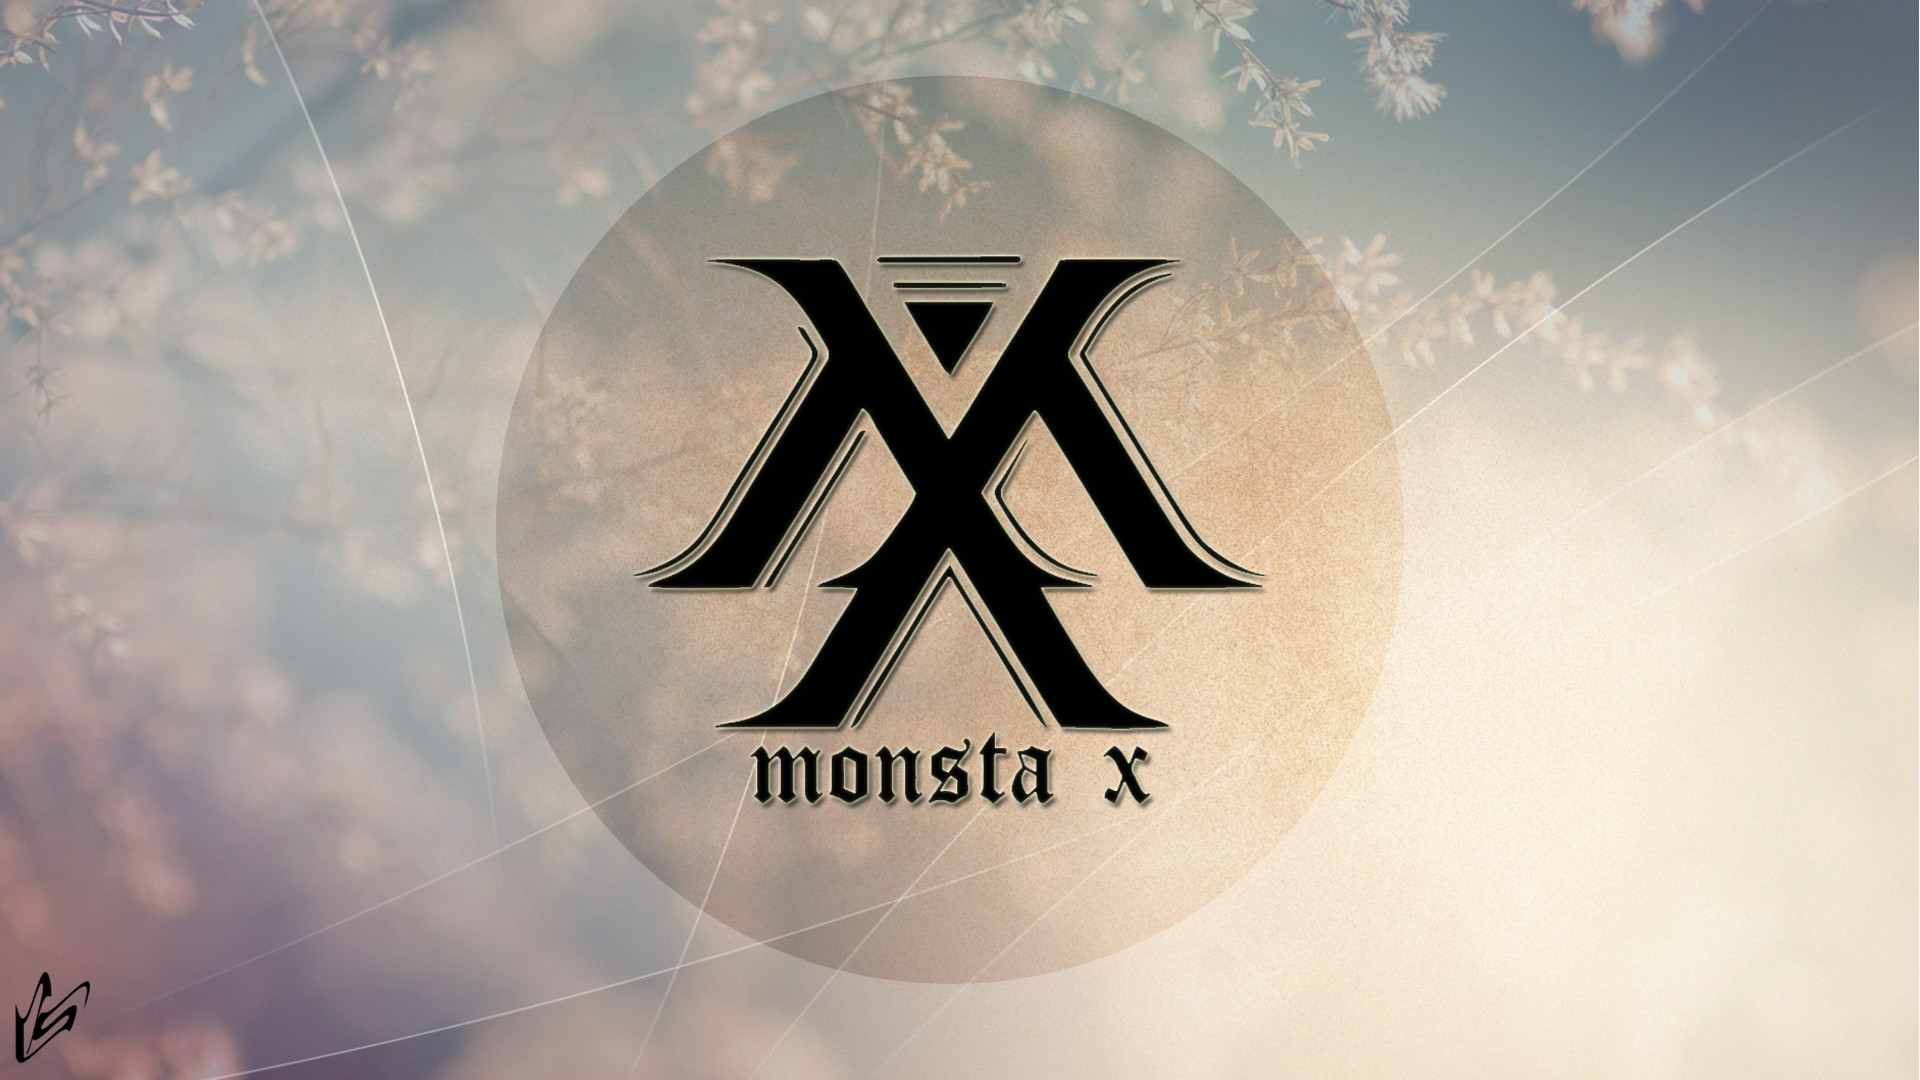 1920x1080 ... Monsta X logo - wallpaper by Starzphoenix